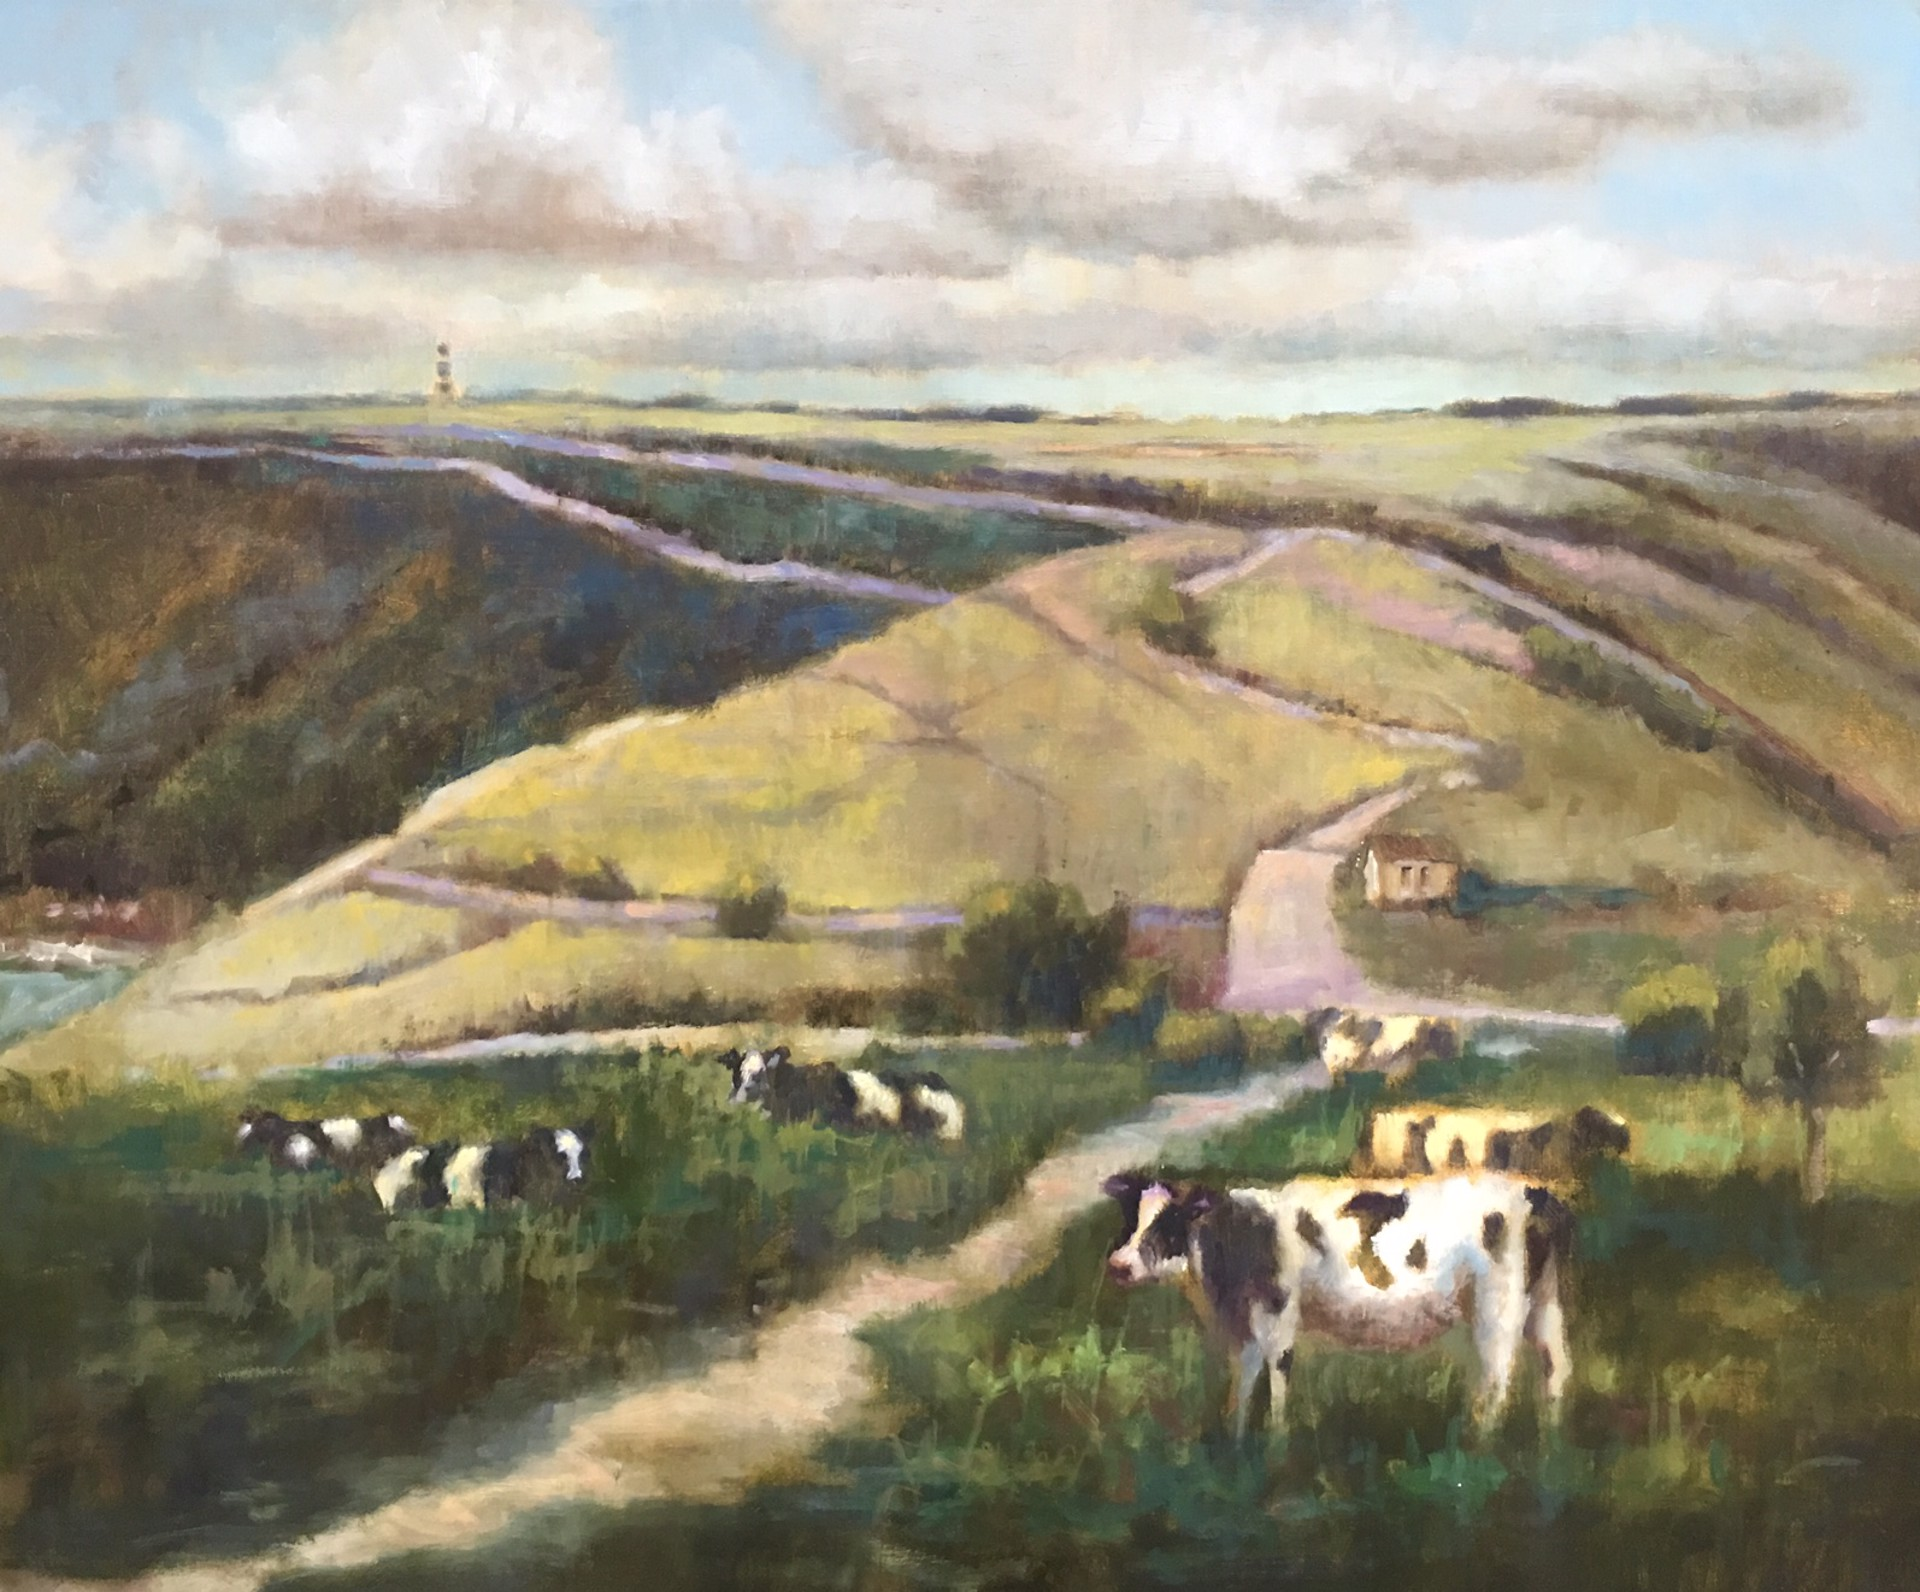 Green Around The Hills by Laurie Meyer